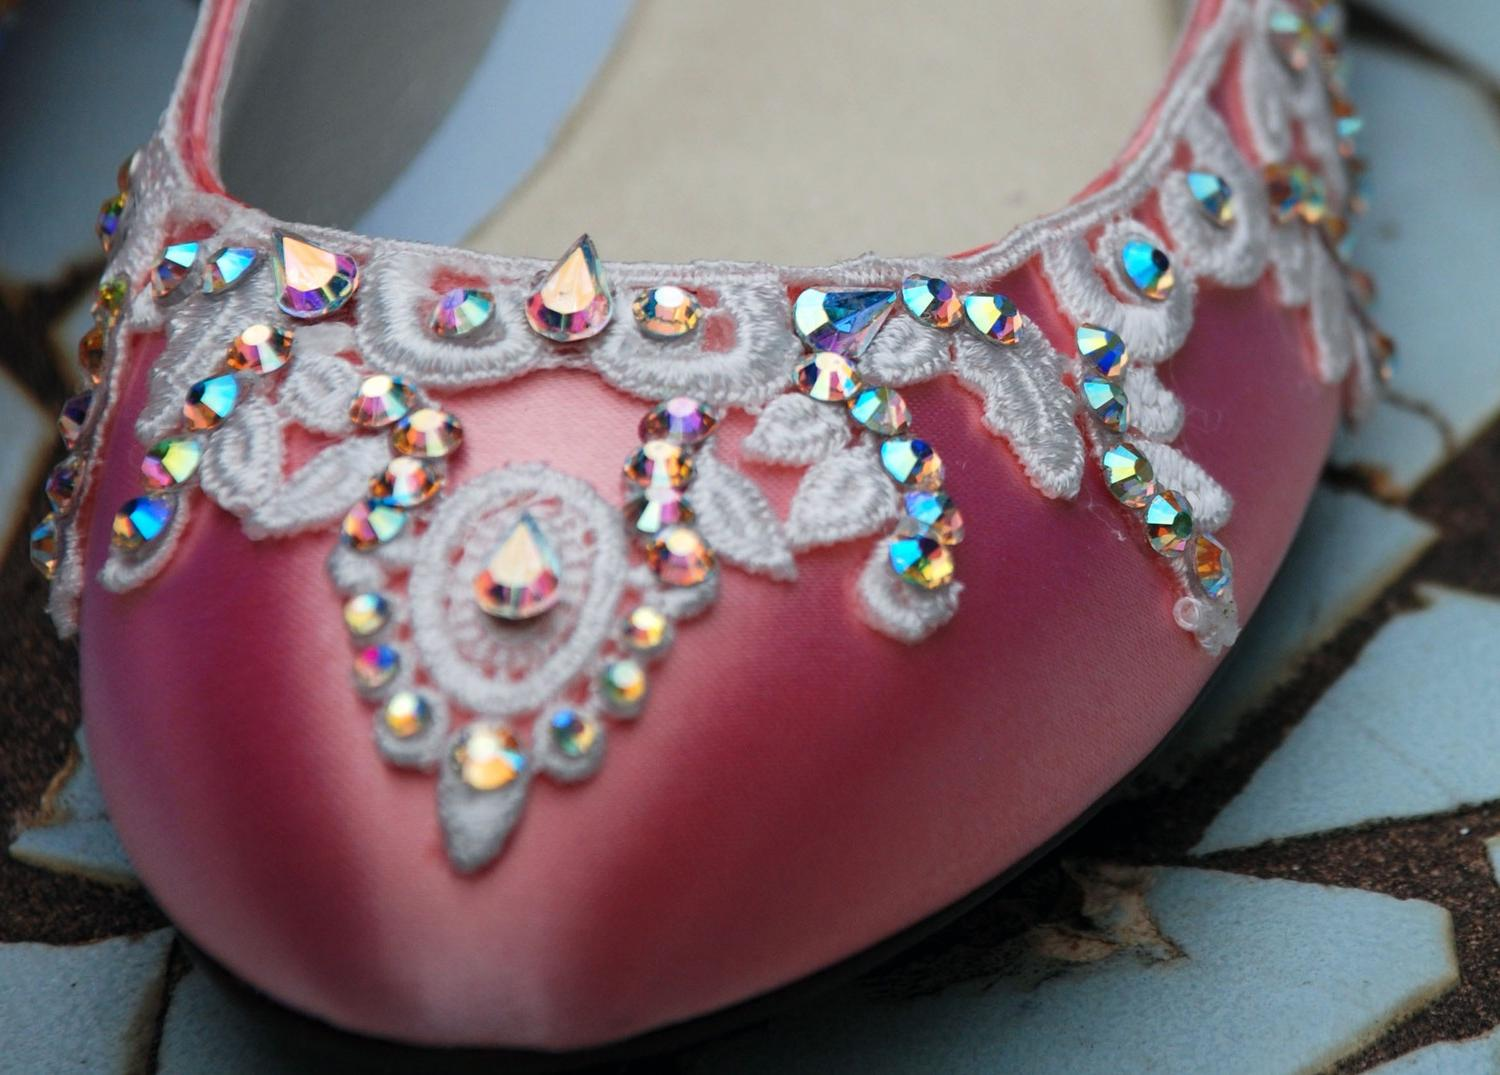 Belle, Bridal shoes